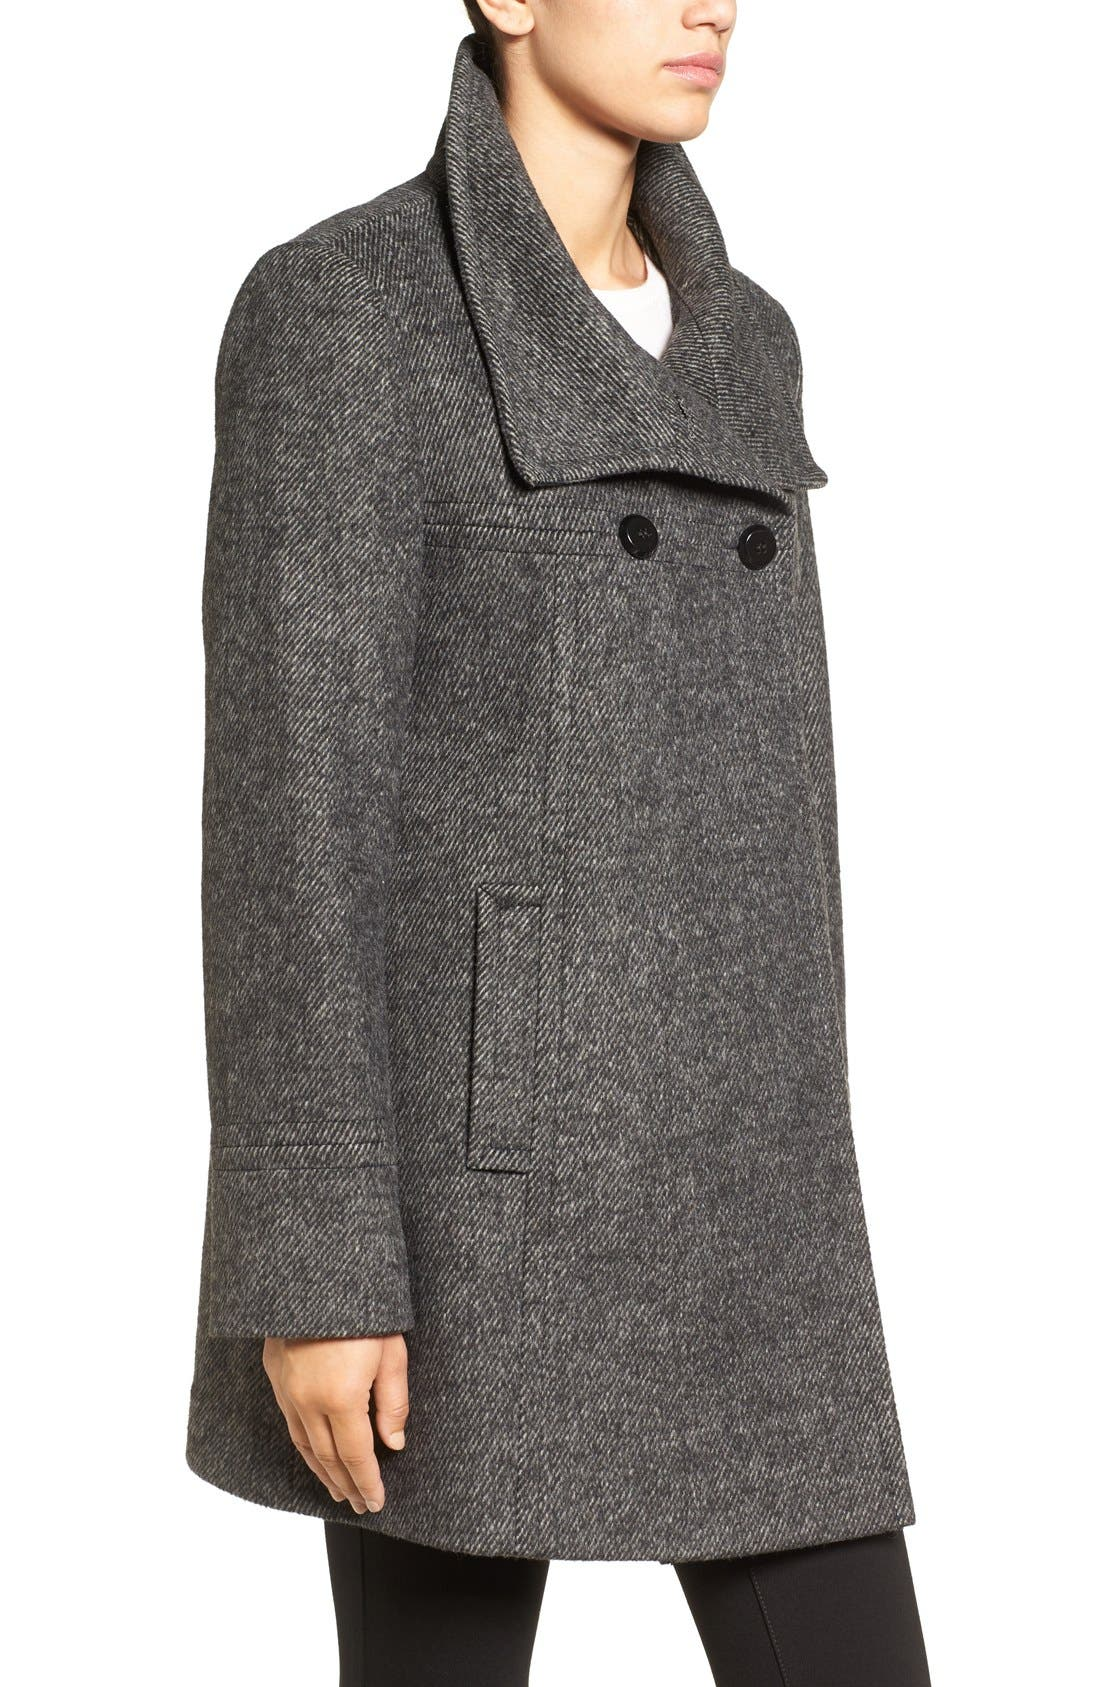 Double Breasted Swing Coat,                             Alternate thumbnail 3, color,                             Black/ Charcoal